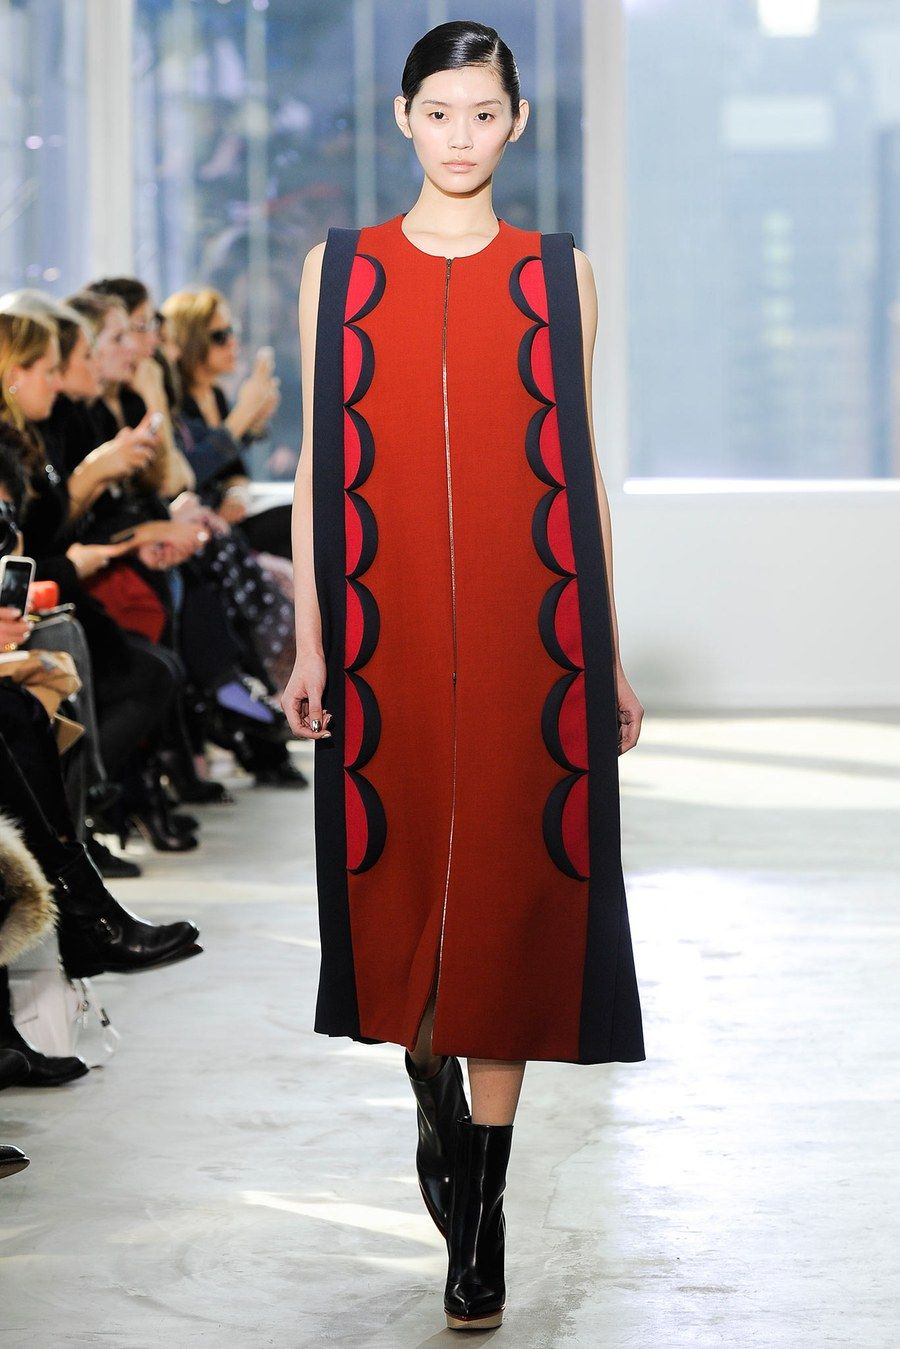 Fashion week Show Review: Delpozo Fall 2014 for lady